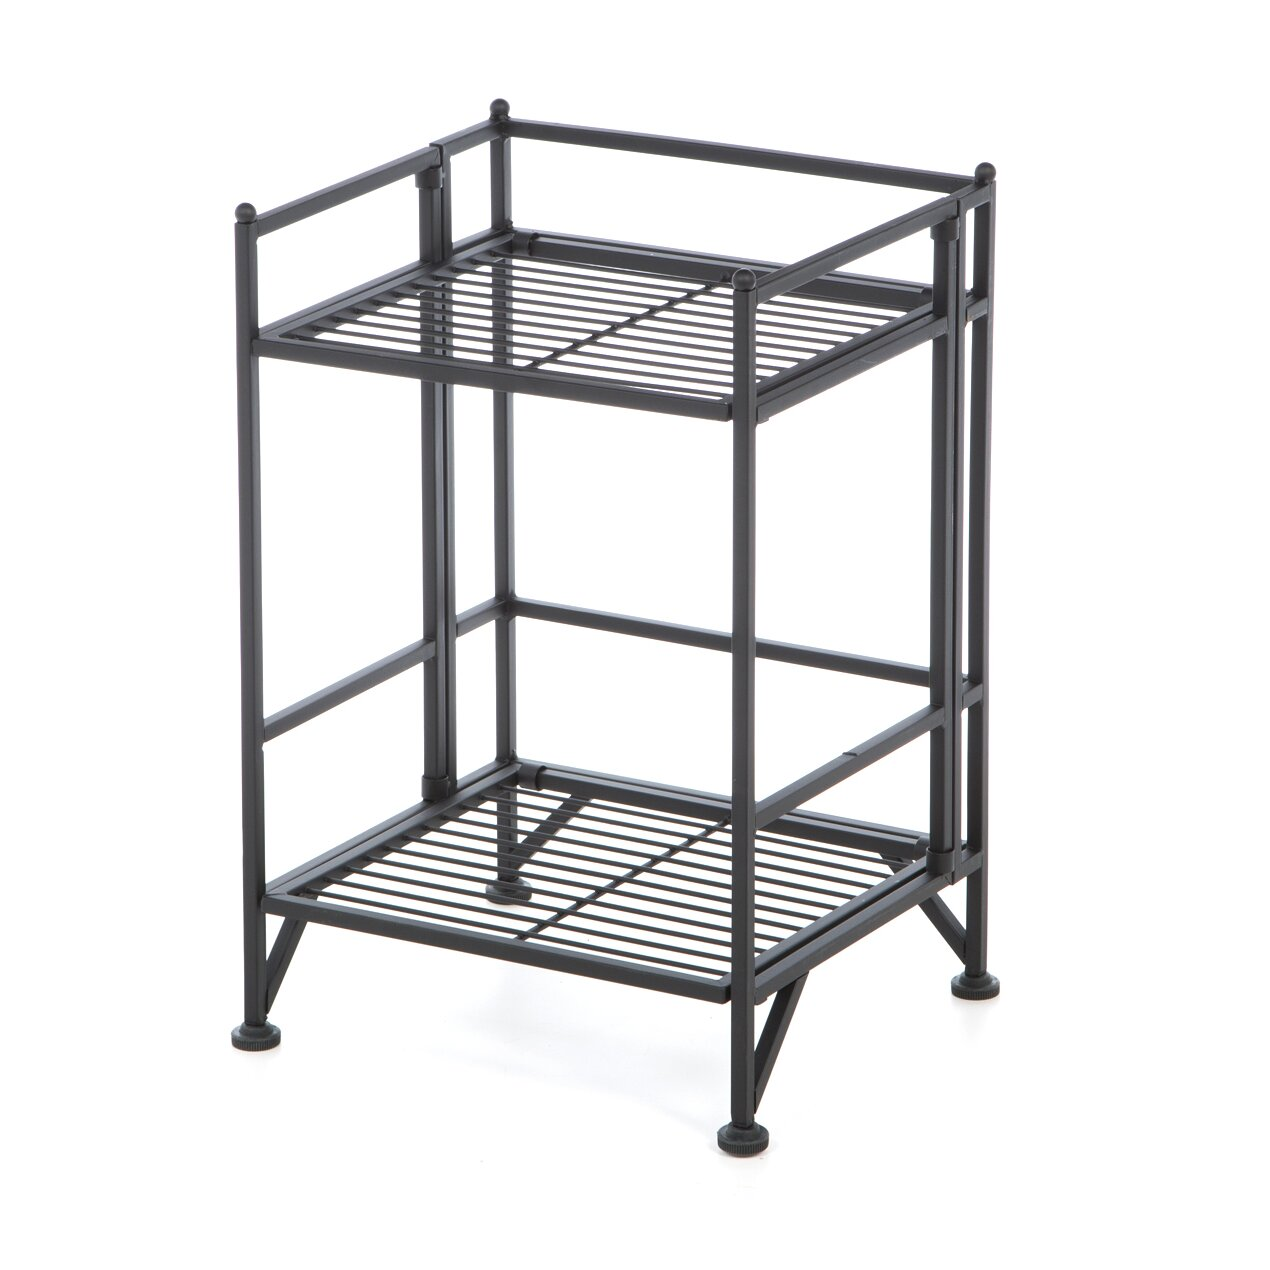 Convenience concepts xtra storage 2 tier folding shelf 20 Folding bookshelf